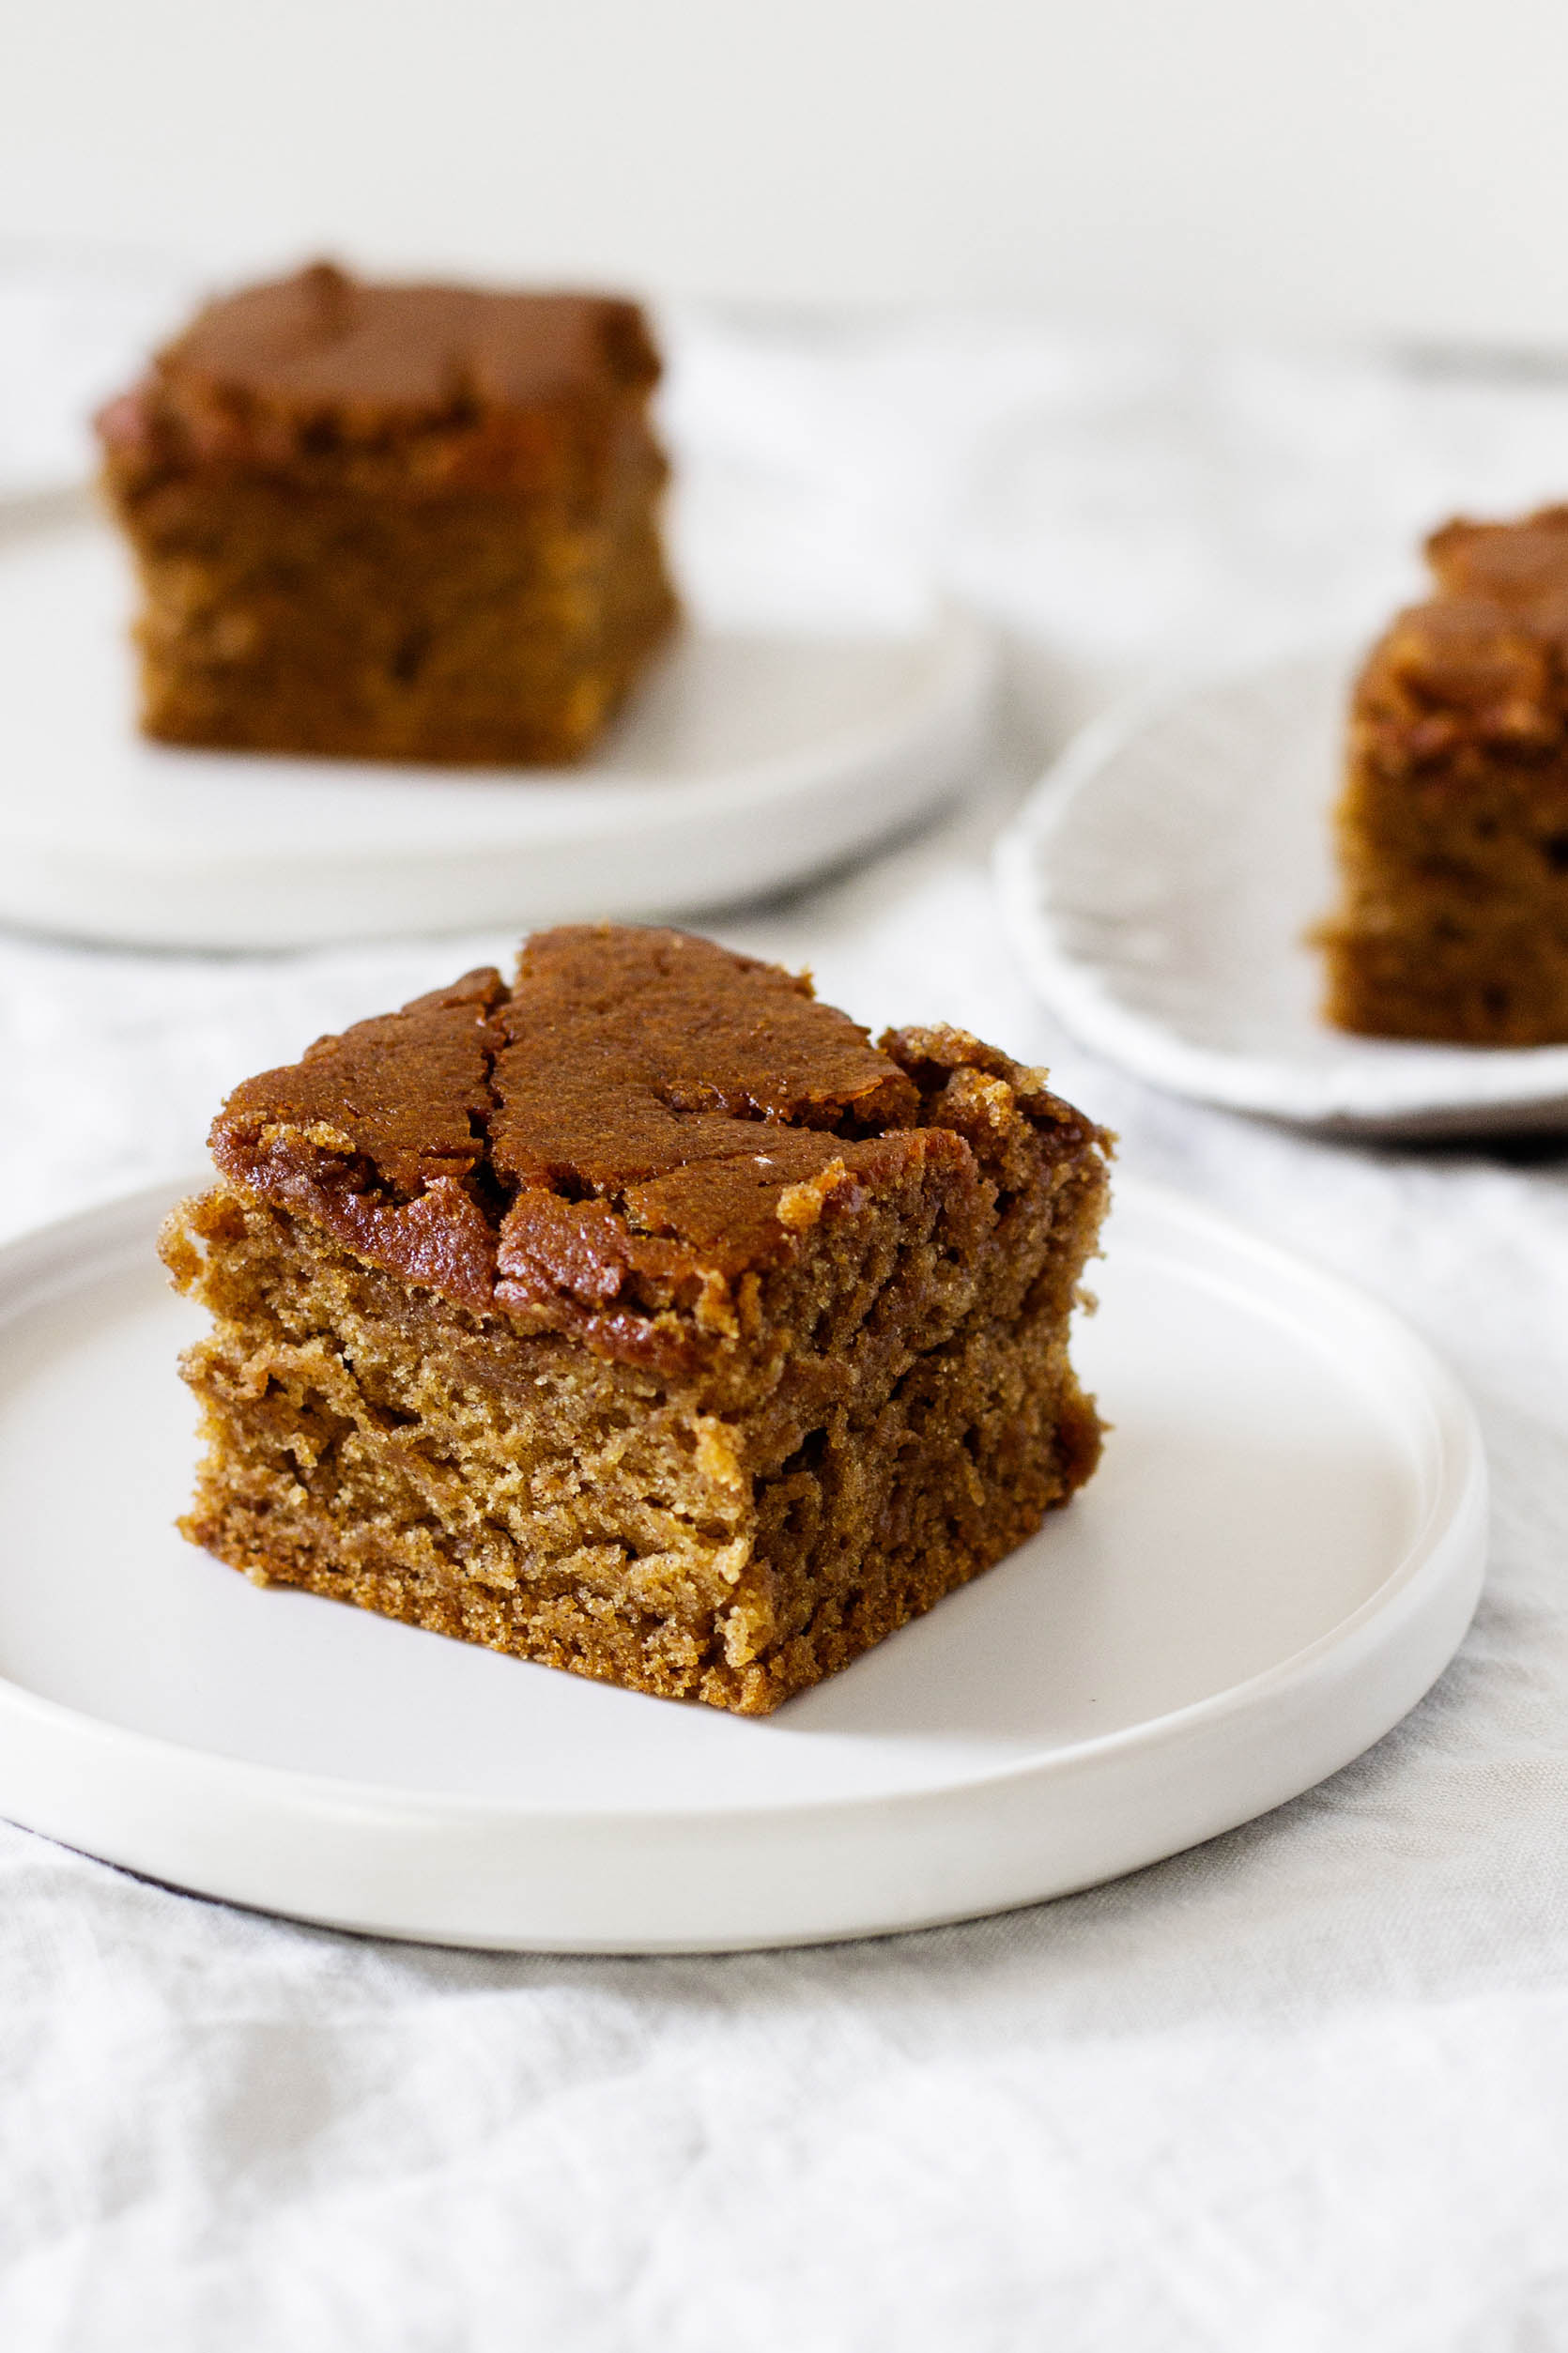 Dessert plates with square slices of vegan, gluten-free gingerbread cake.